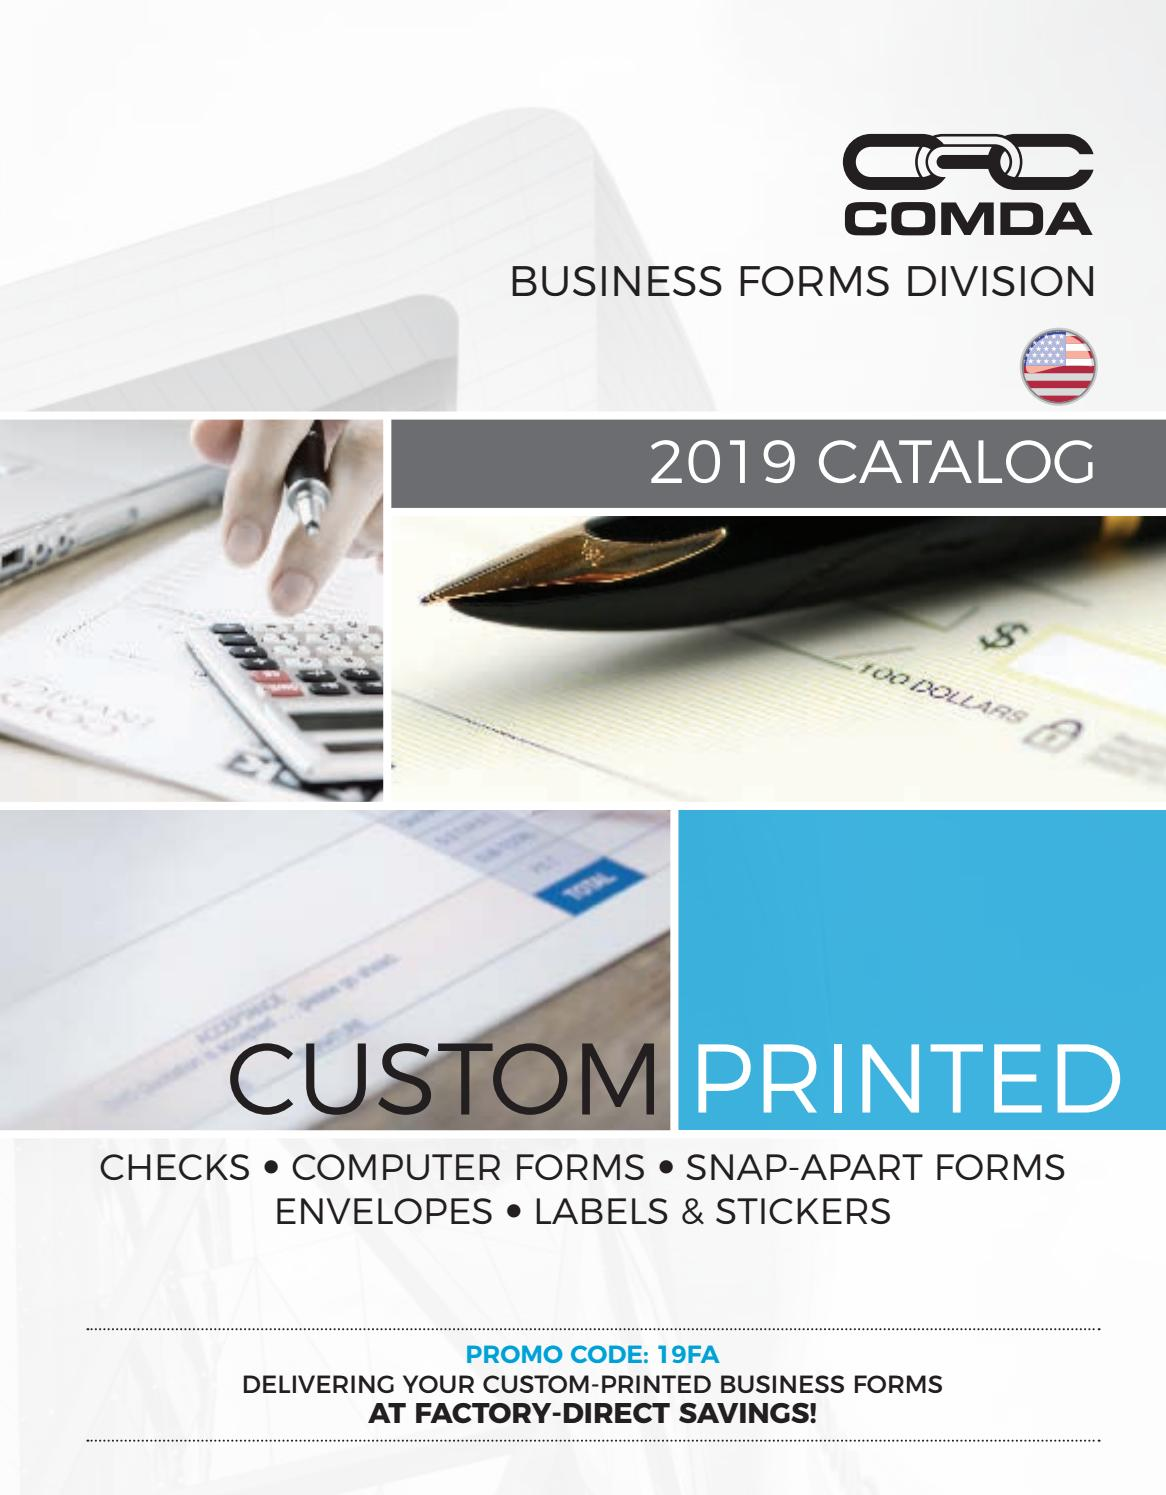 COMDA Advertising | Forms and Labels 2019 (US) by COMDA